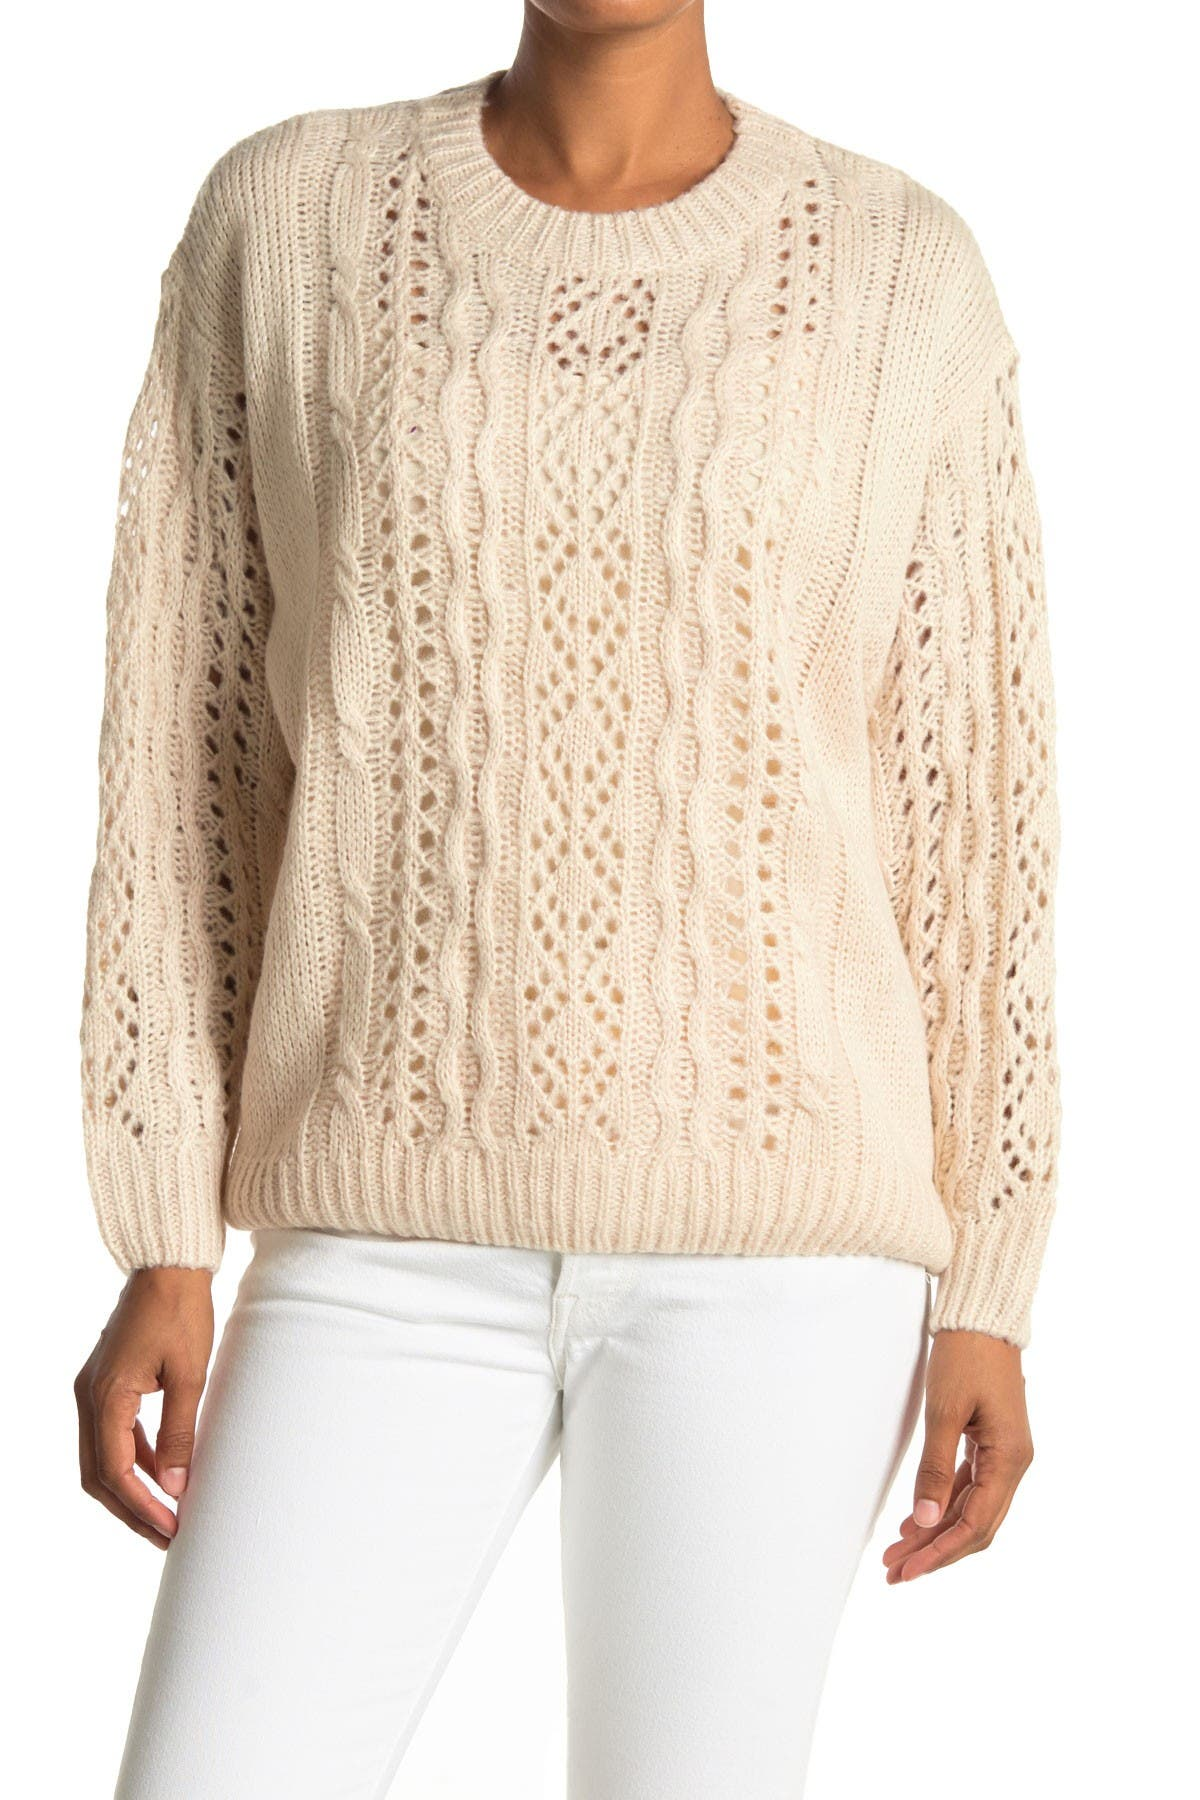 Image of Lush Open Knit Sweater